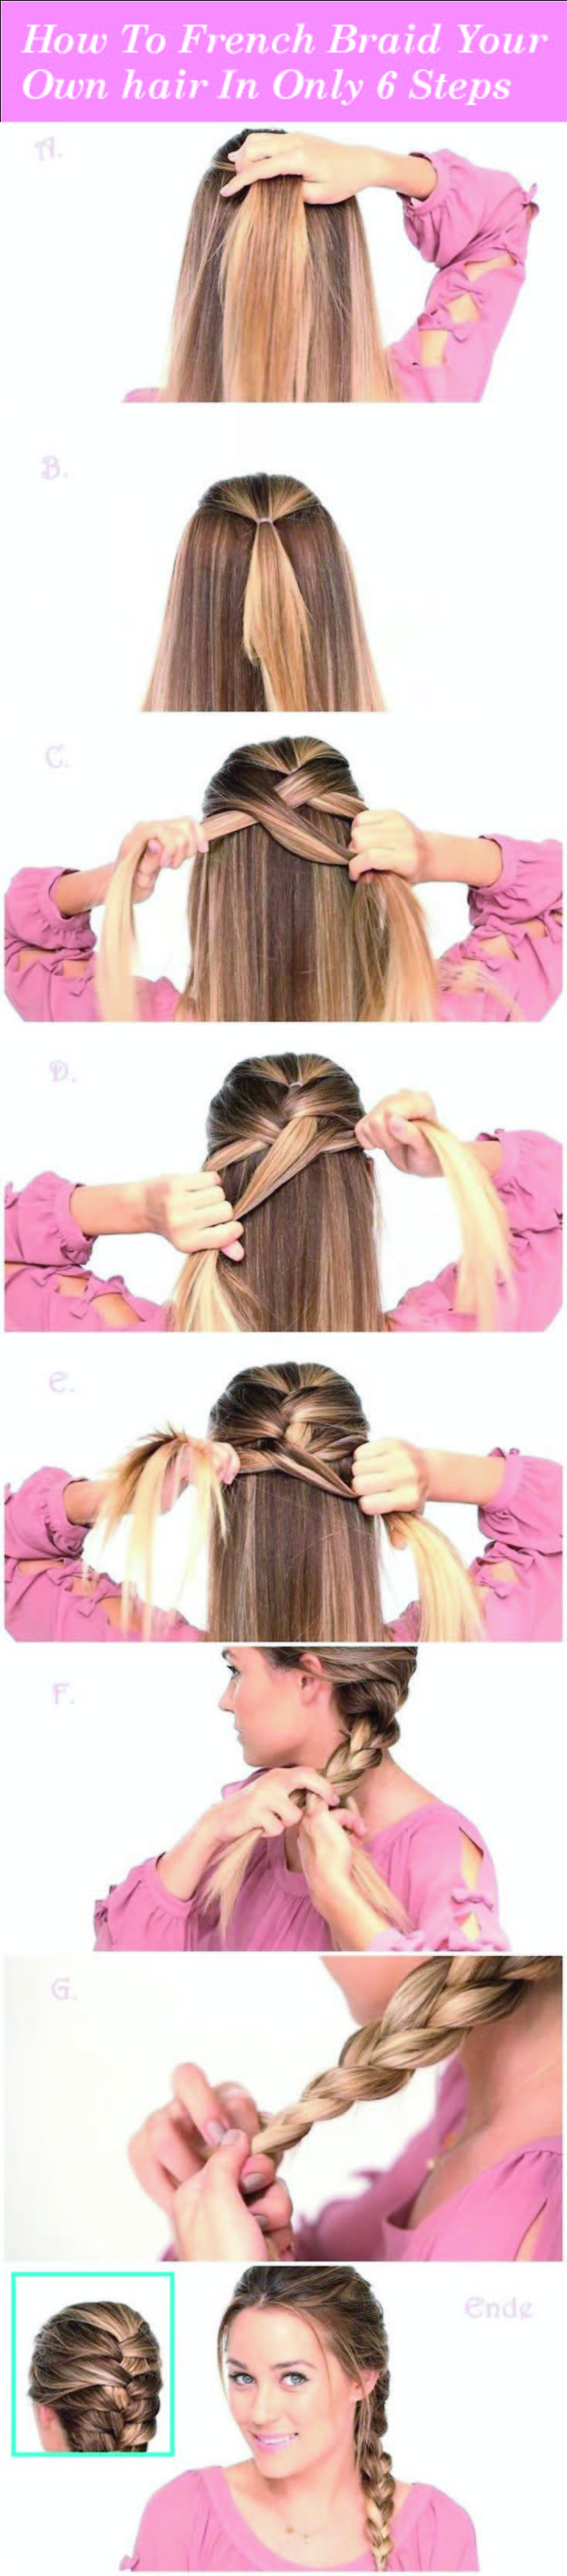 Fancy French Braids? Want To Know How To French Braid Your Hair? French  Braids